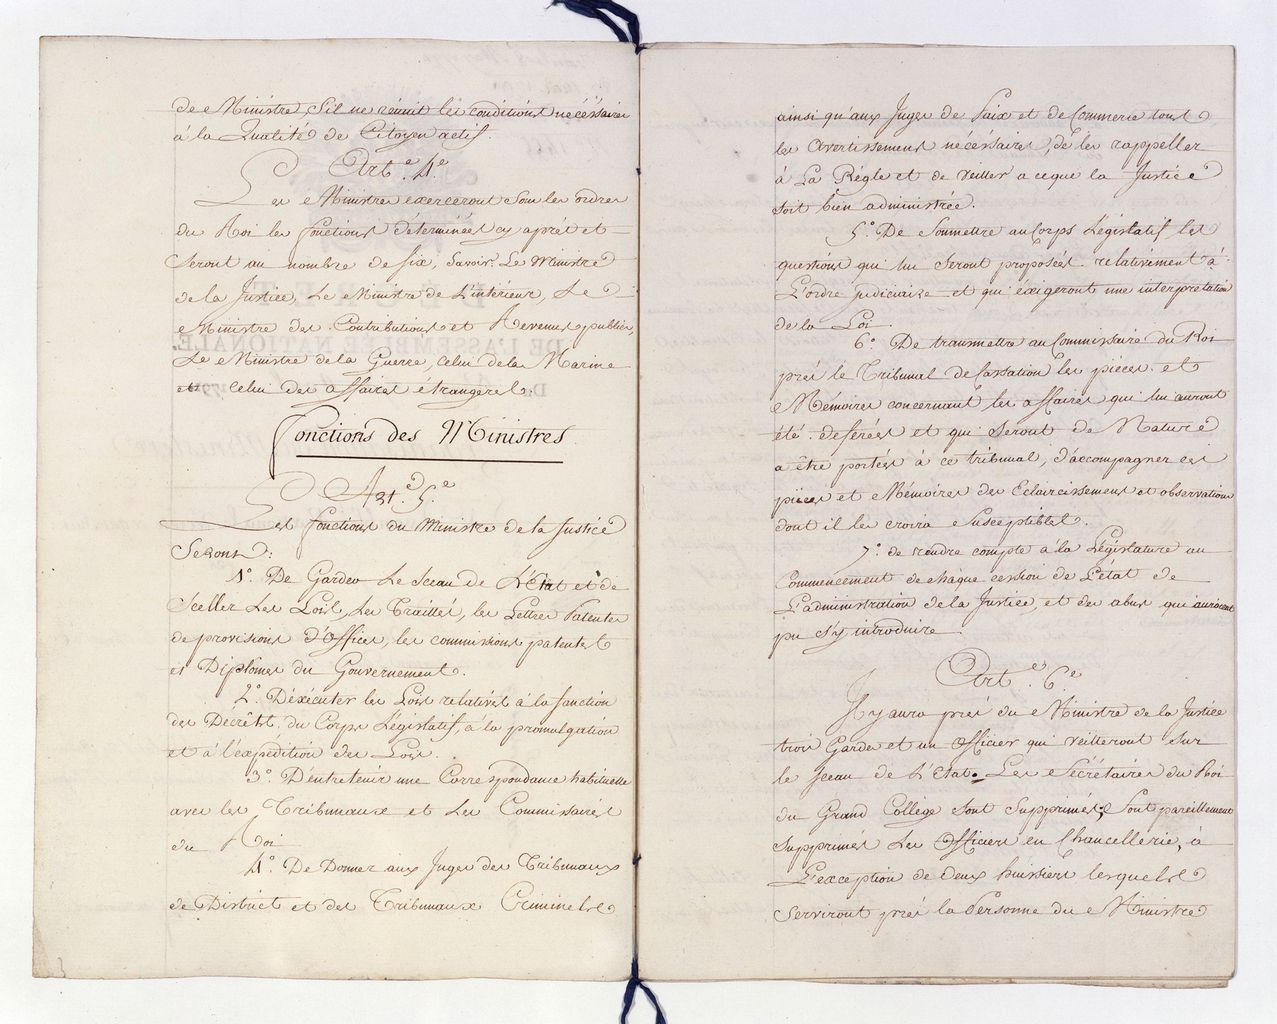 D�cret des 27 avril-25 mai 1791 sur l�organisation des minist�res. Articles 5 et 6 : De la justice. Paris, Archives Nationales [BB 34 1 14, n� 1455] � Archives nationales